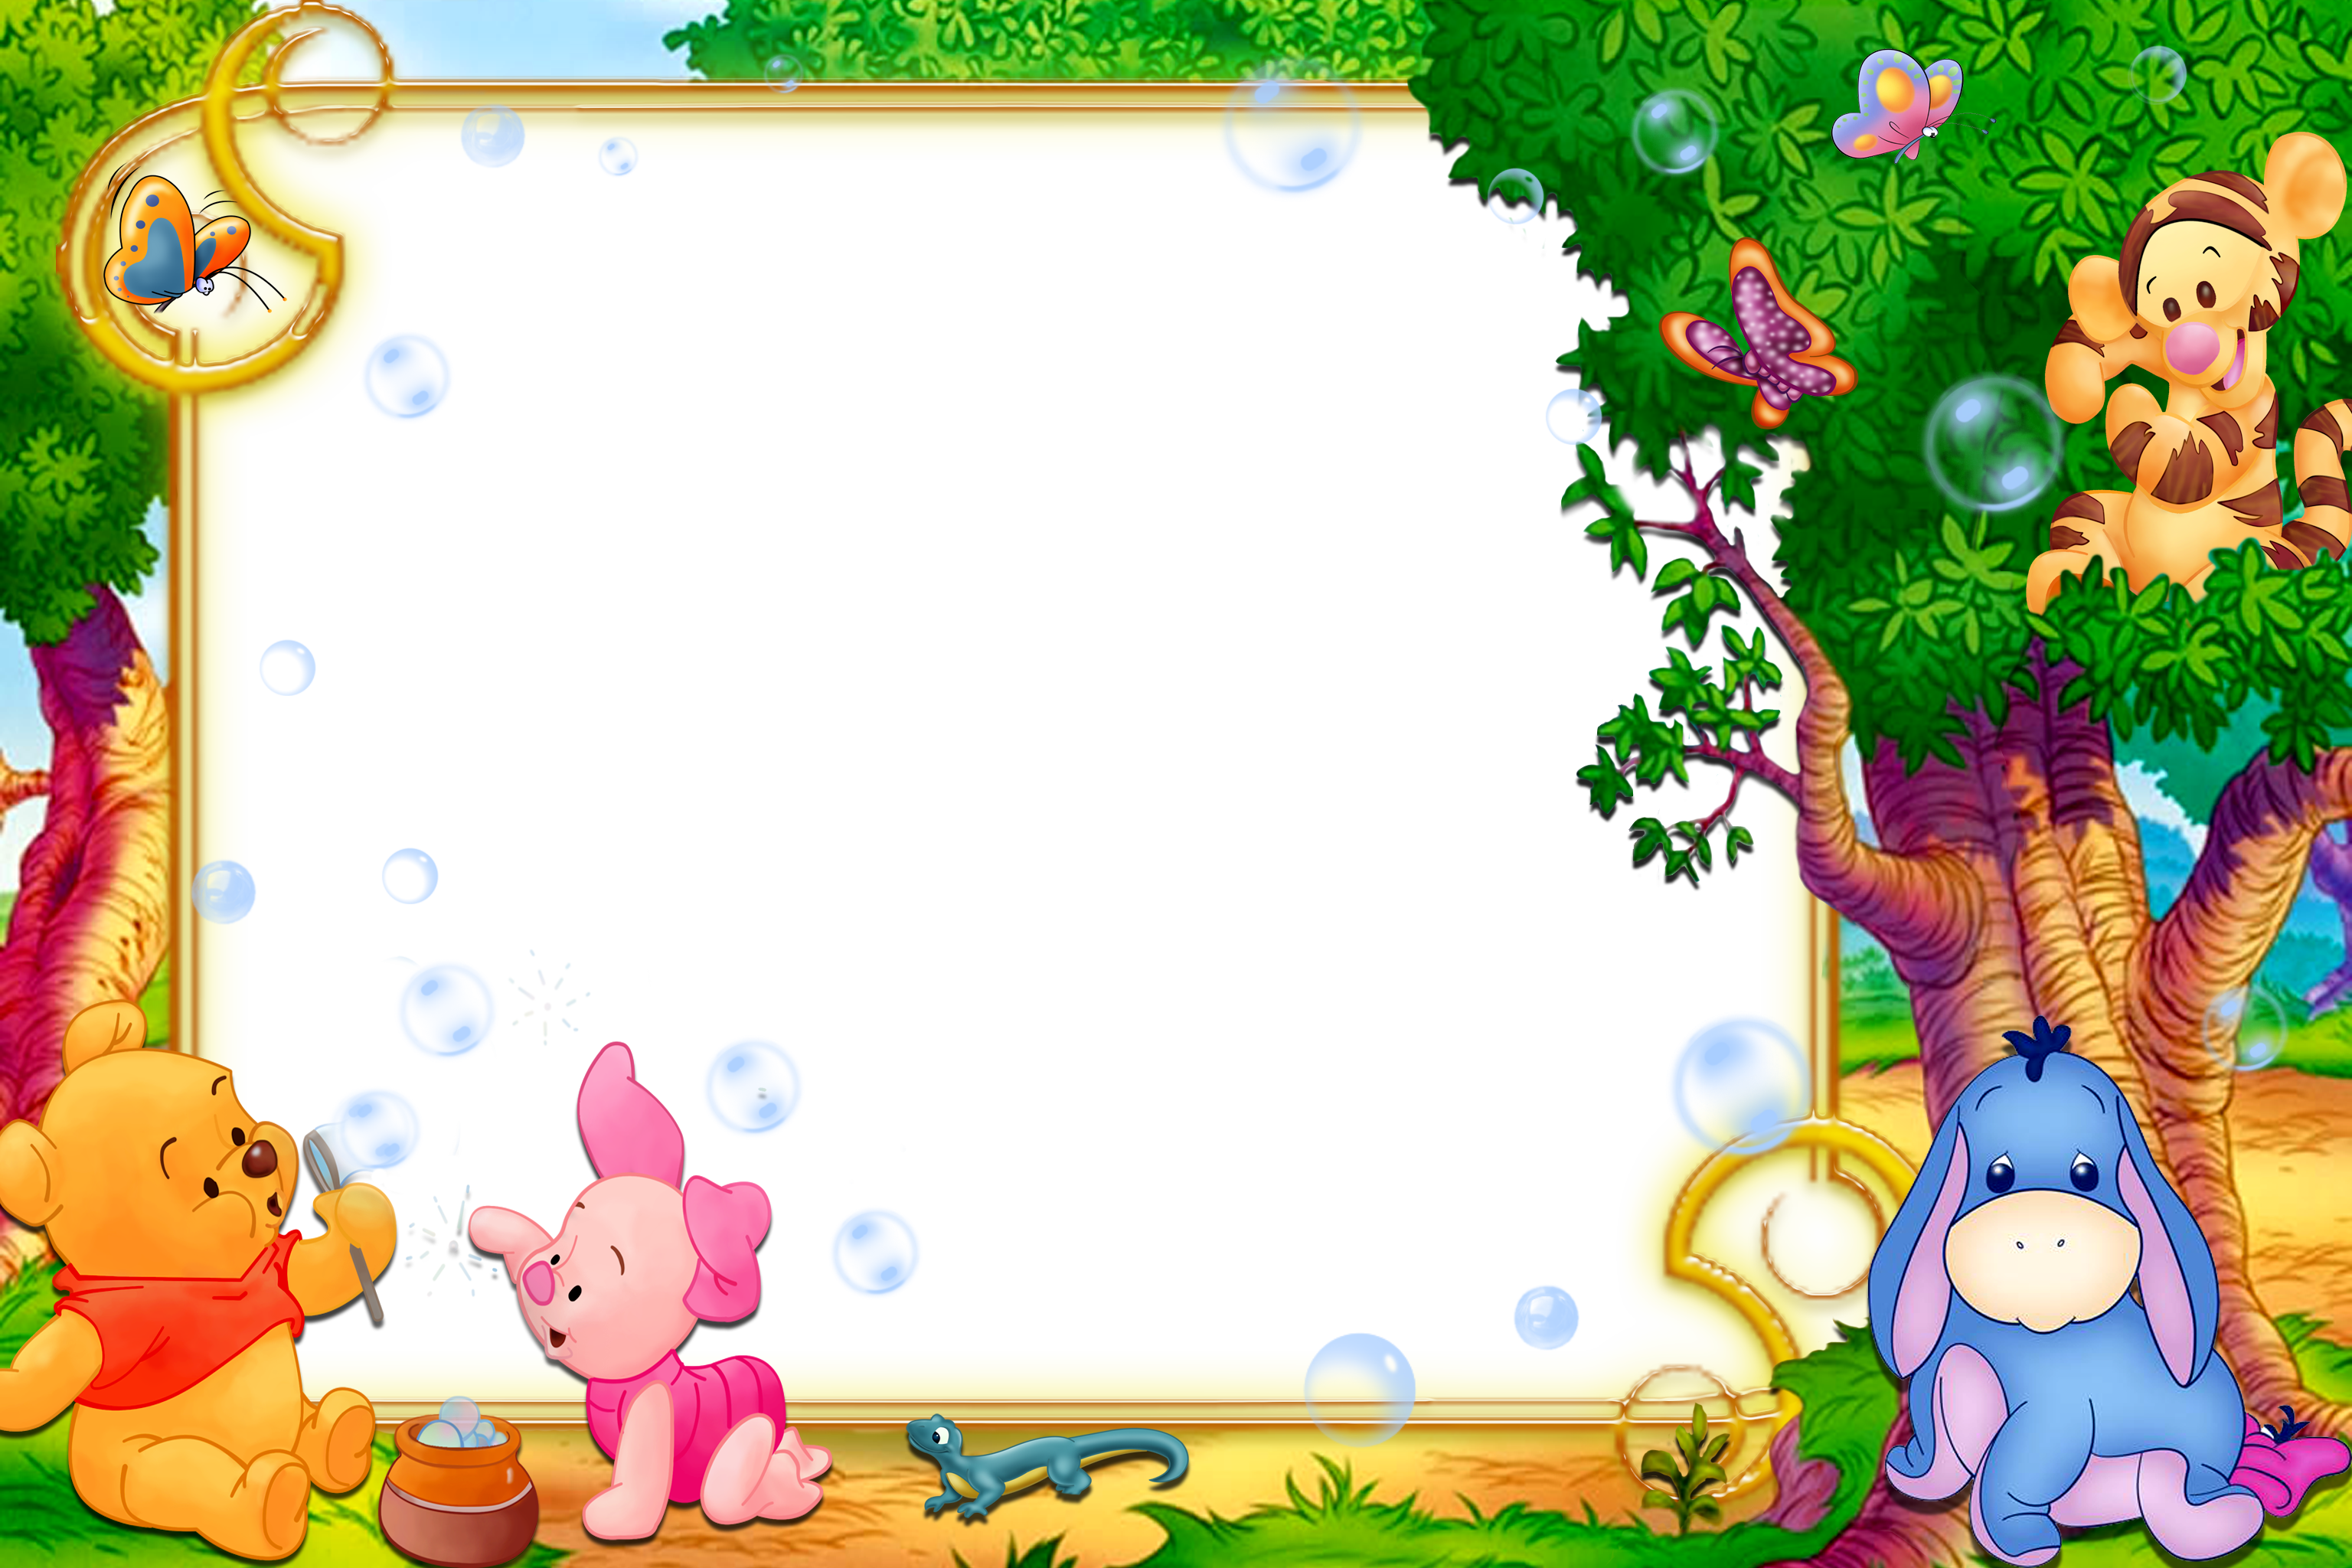 Kids Transparent Frame With Winnie The Pooh Winnie The Pooh Party